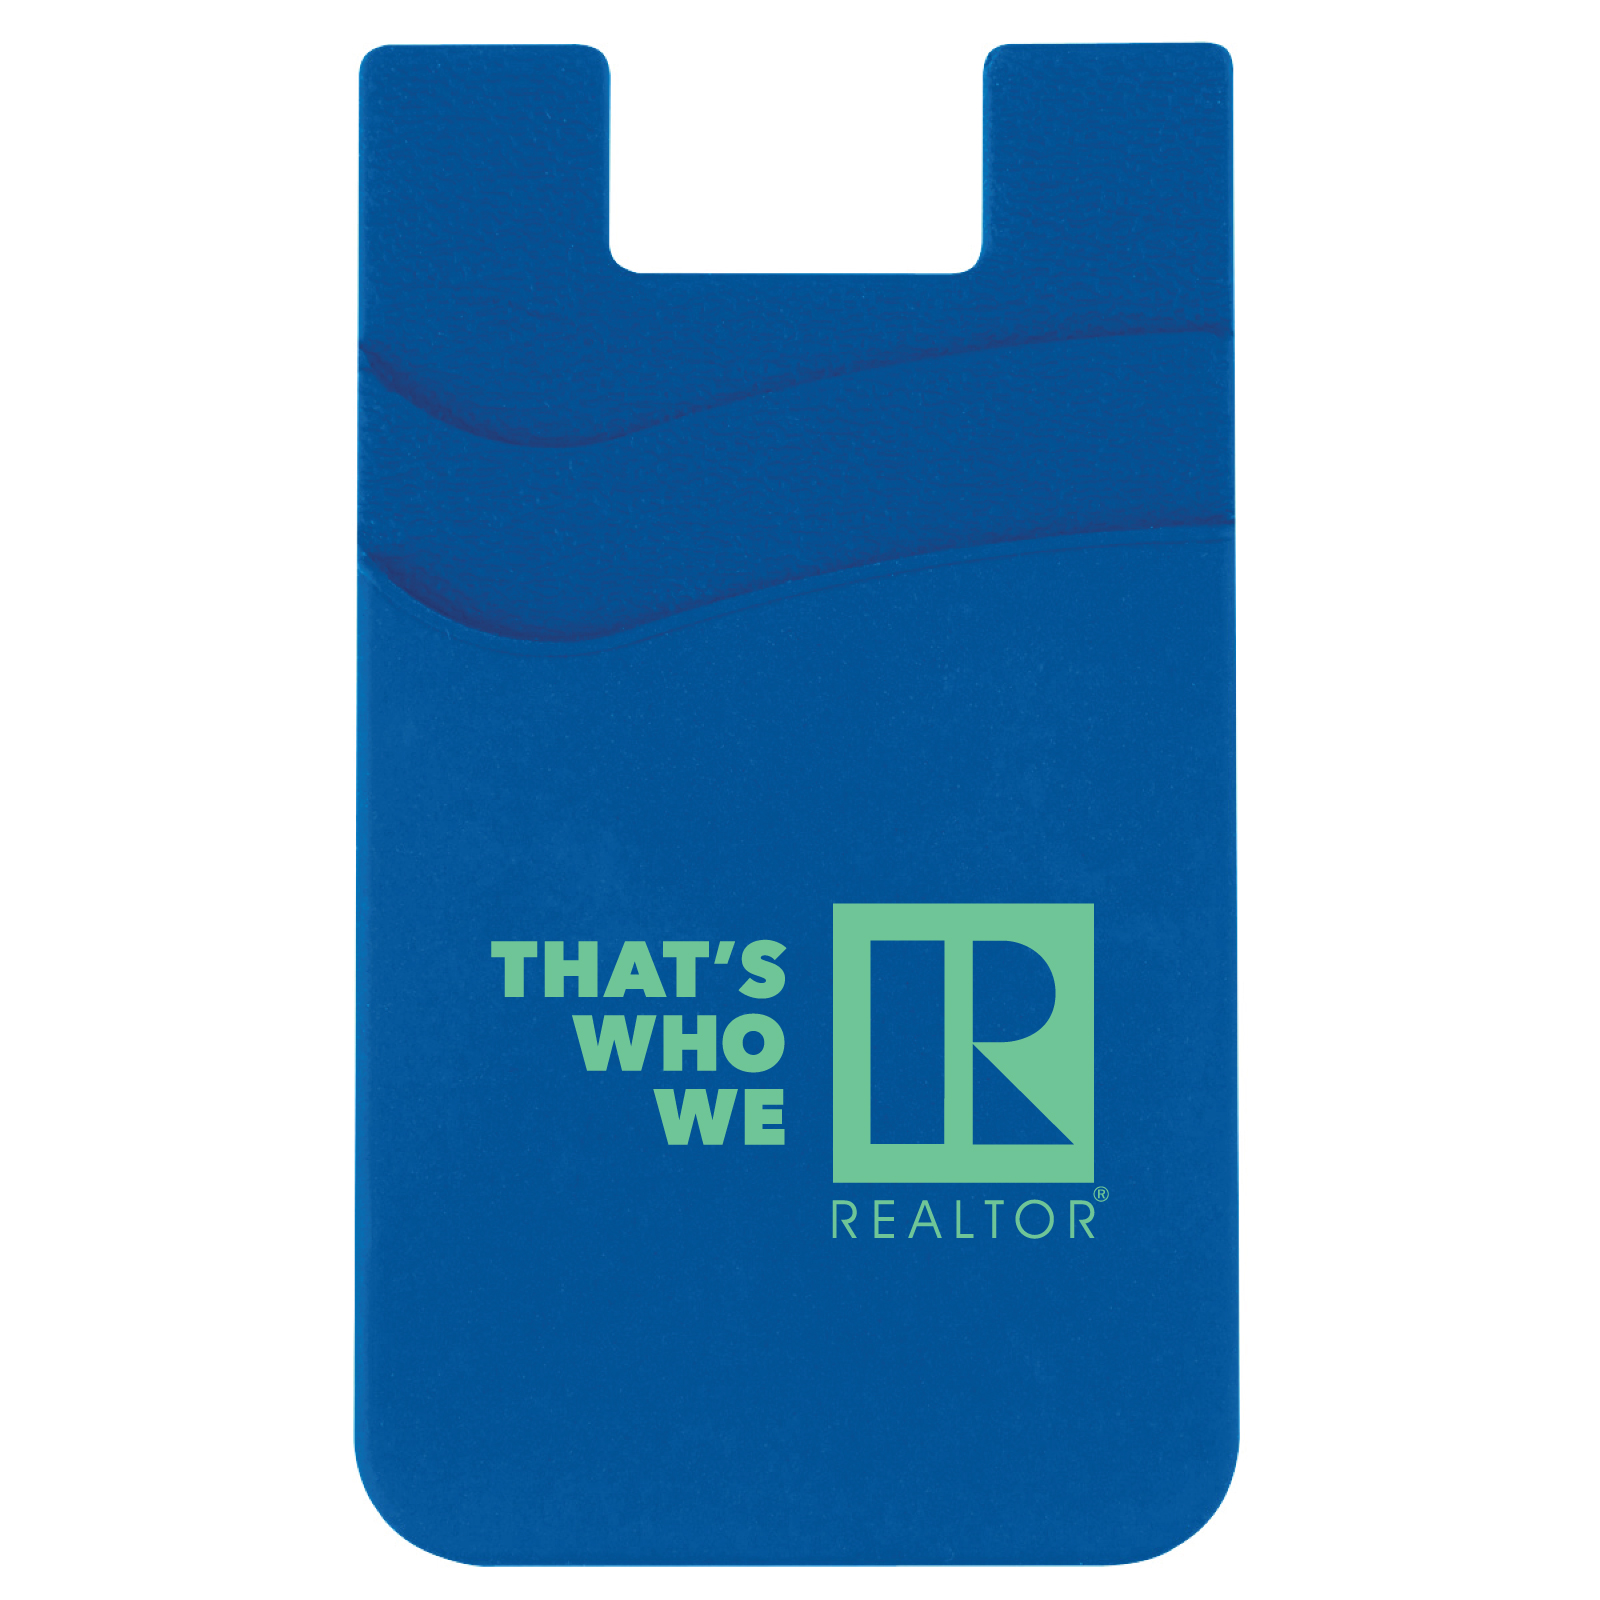 """That's Who We R"" Cell Phone Card Wallet silicone,silicon,twwr,ThatsWhoWeR,That's,TWWR,ThatWho,That'sWho,Twwr,Thats,Whos,We,Ares,Cards,Wallets,Holders,Cells,Phones,Techs,Business,Credits,iPhones"